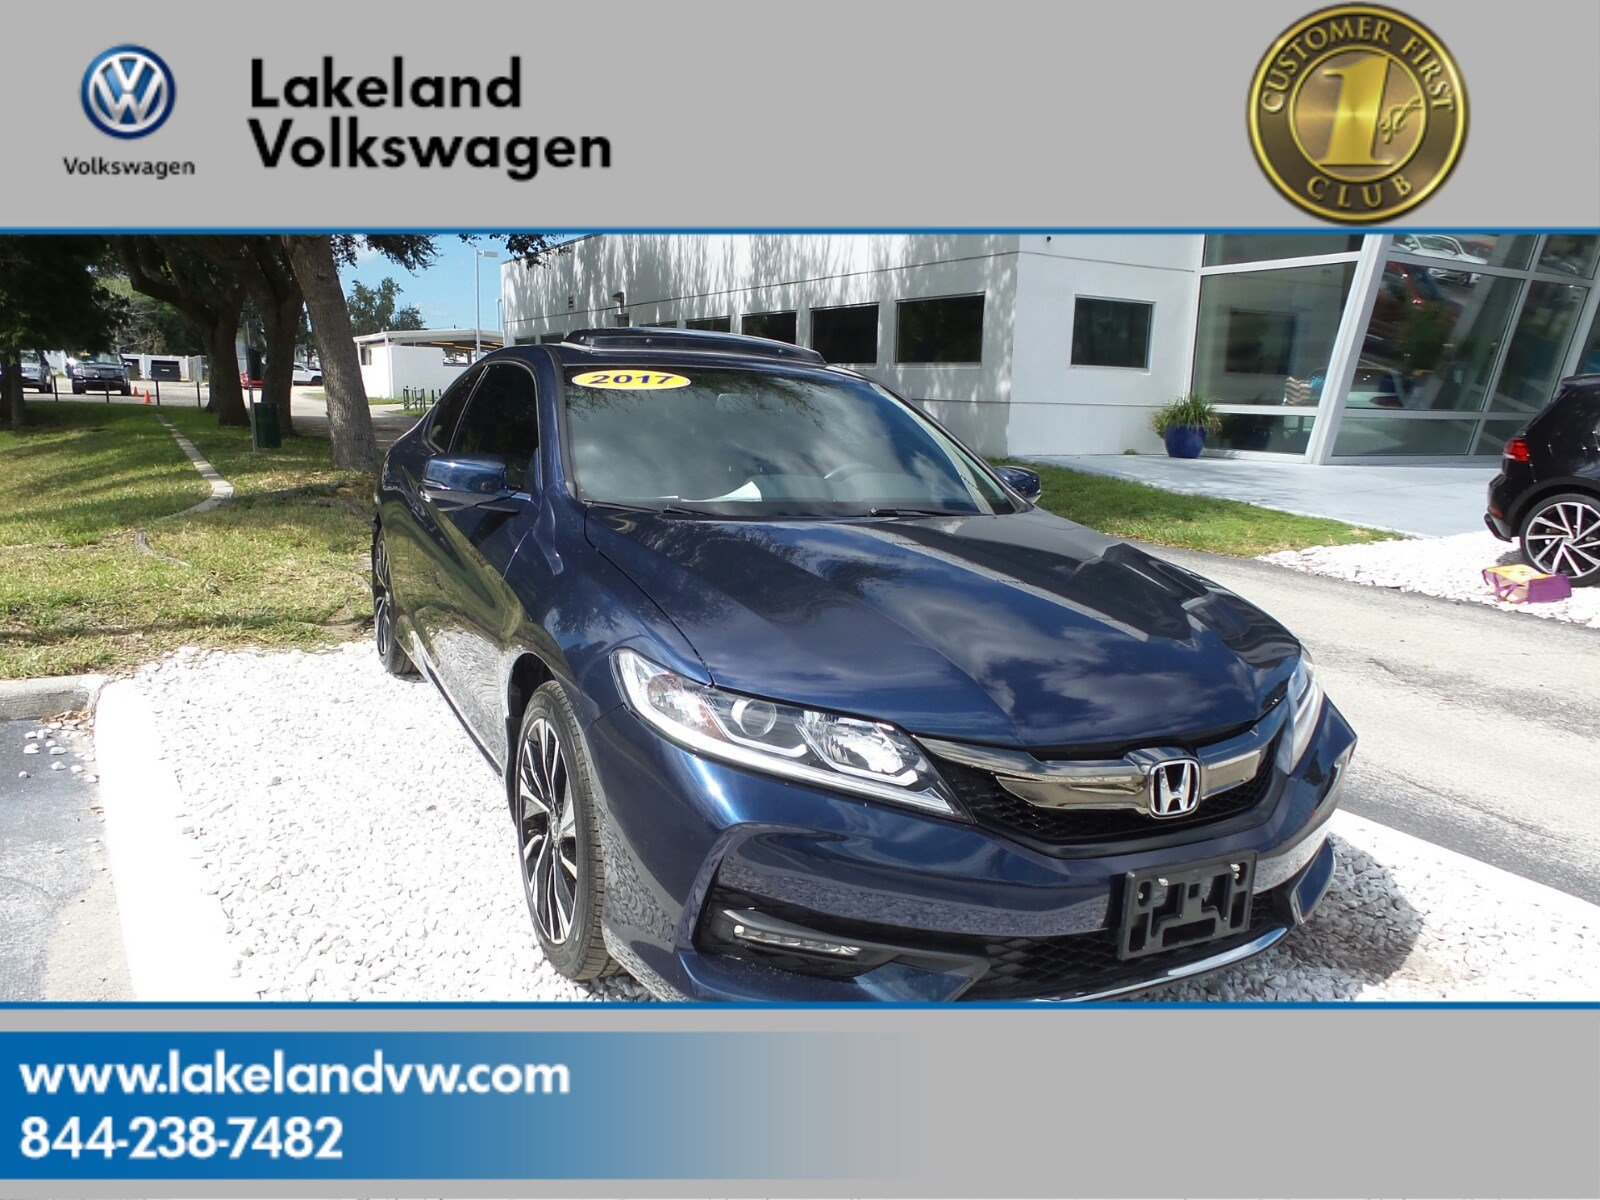 Pre Owned 2017 Honda Accord Coupe Ex L V6 2dr Car In Lakeland